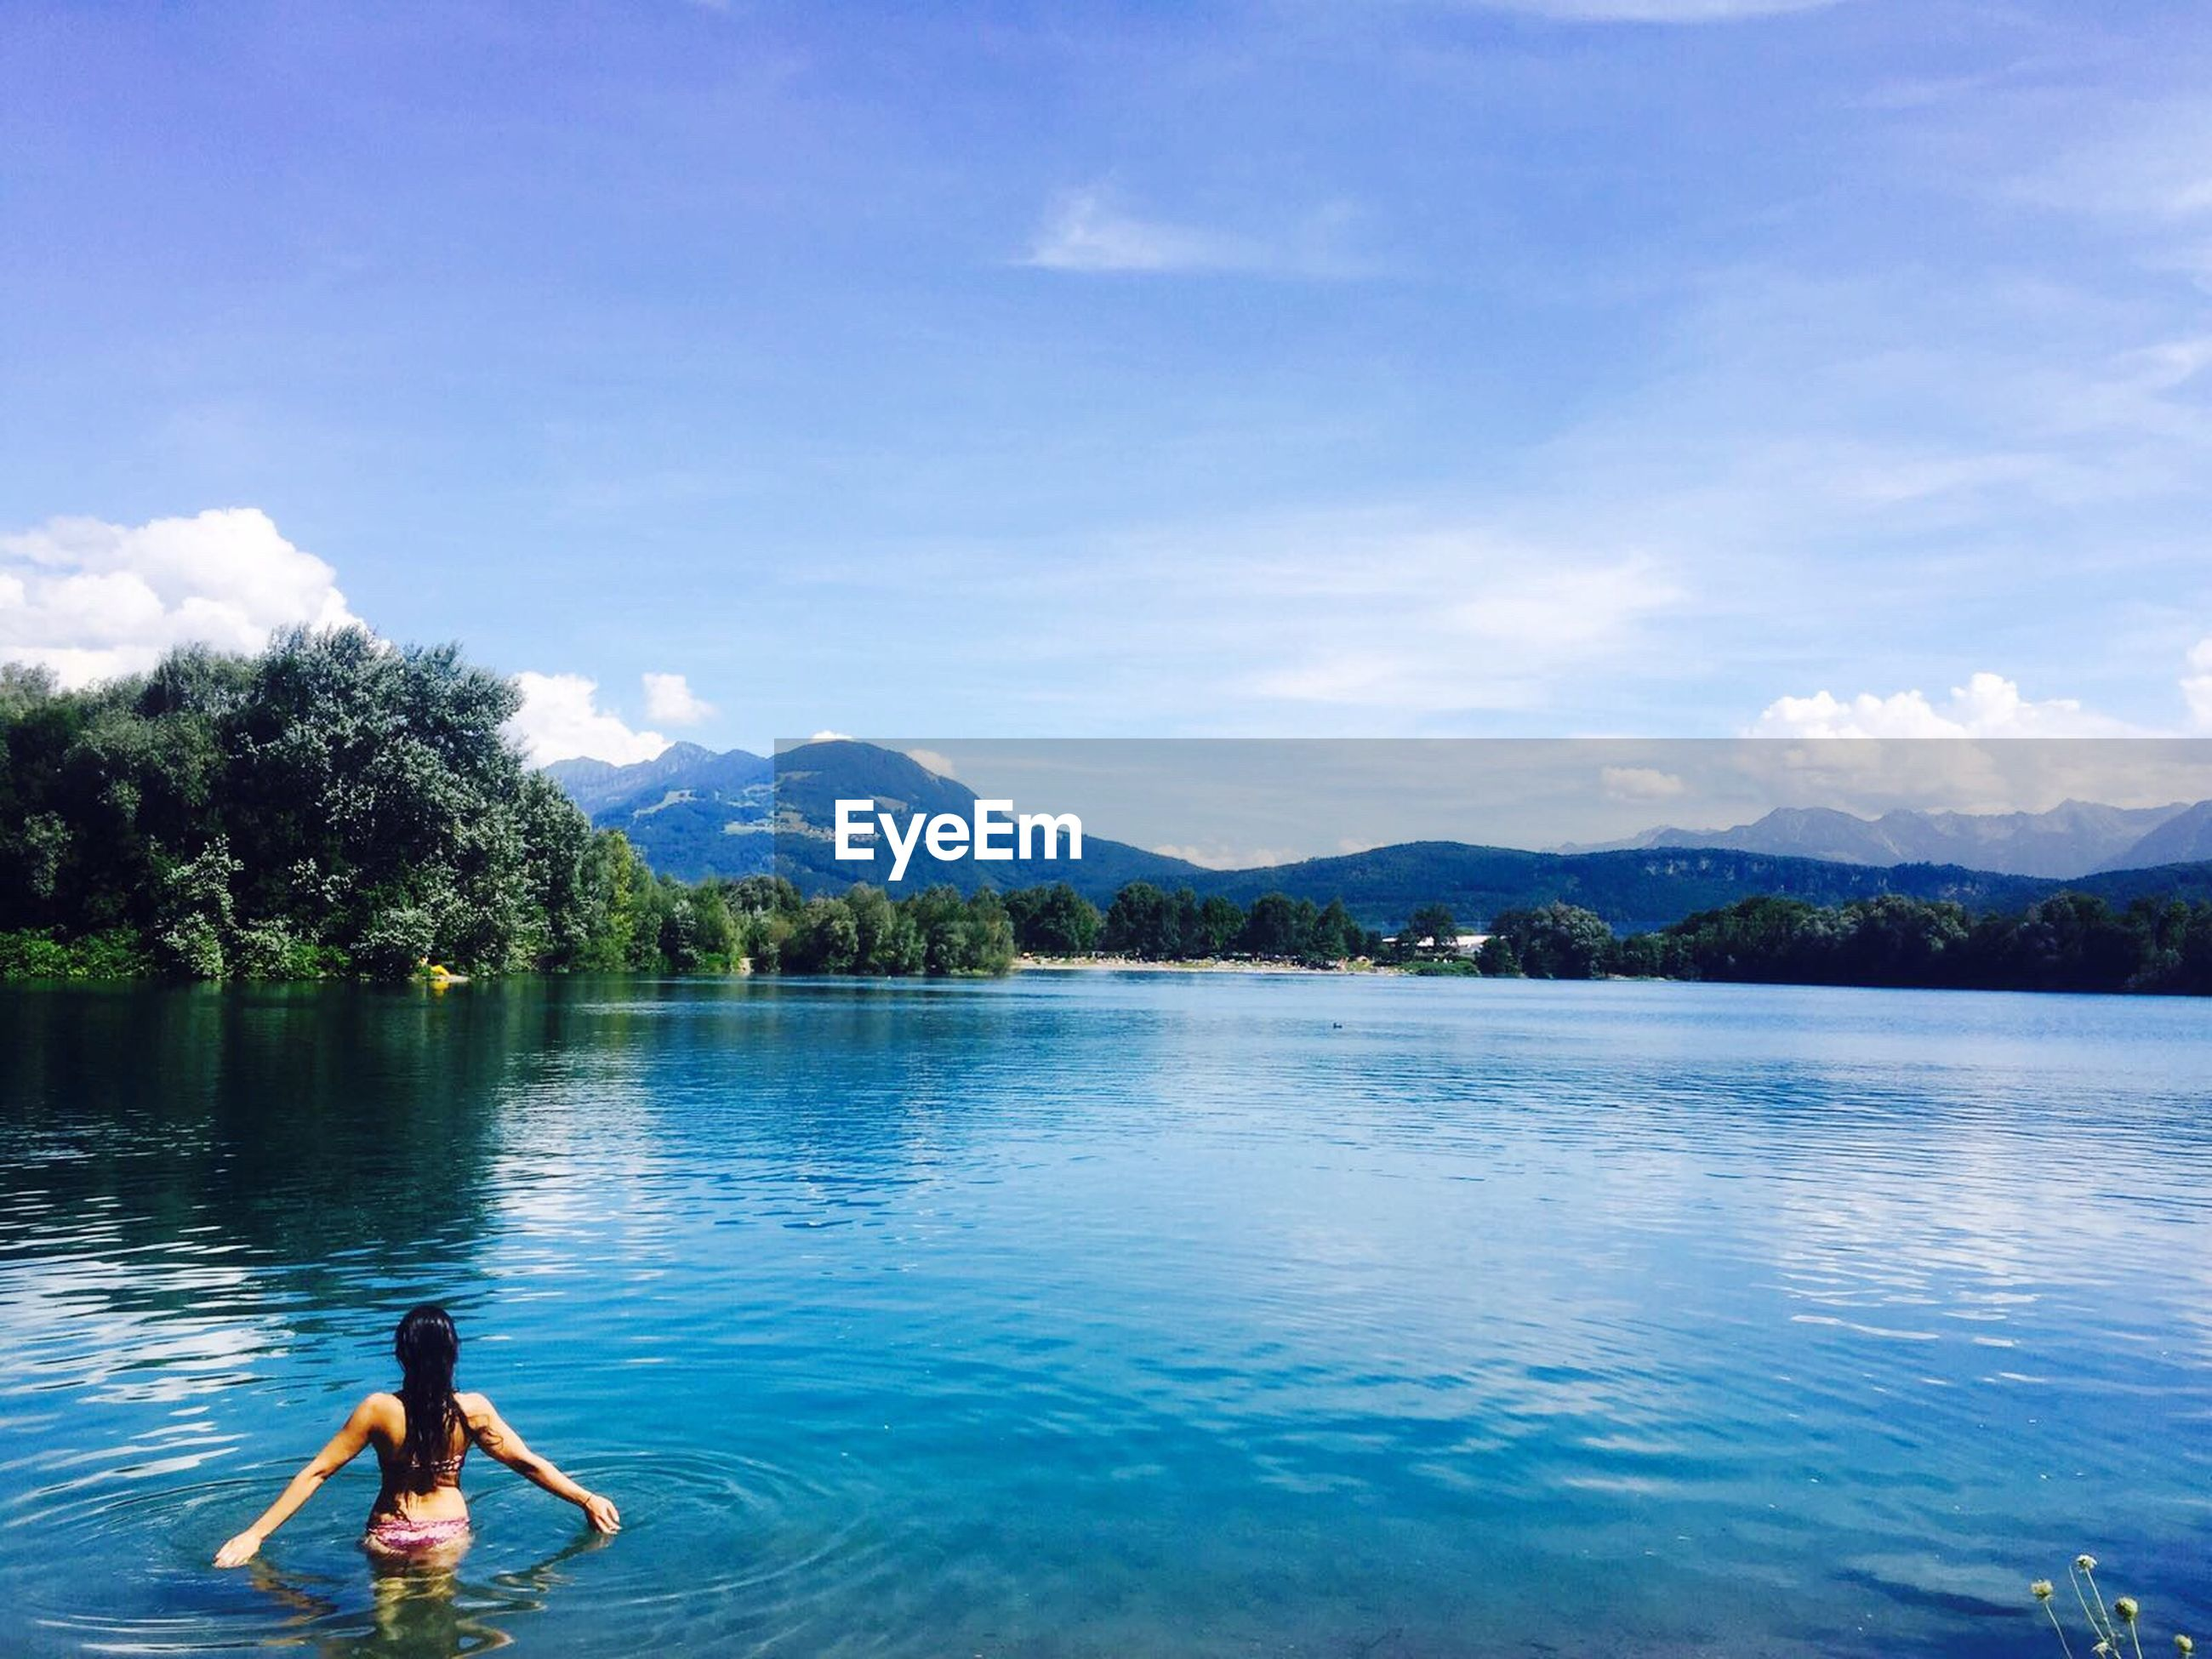 water, mountain, sky, one person, lake, leisure activity, tree, day, cloud - sky, nature, outdoors, waterfront, beauty in nature, real people, scenics, swimming, young adult, people